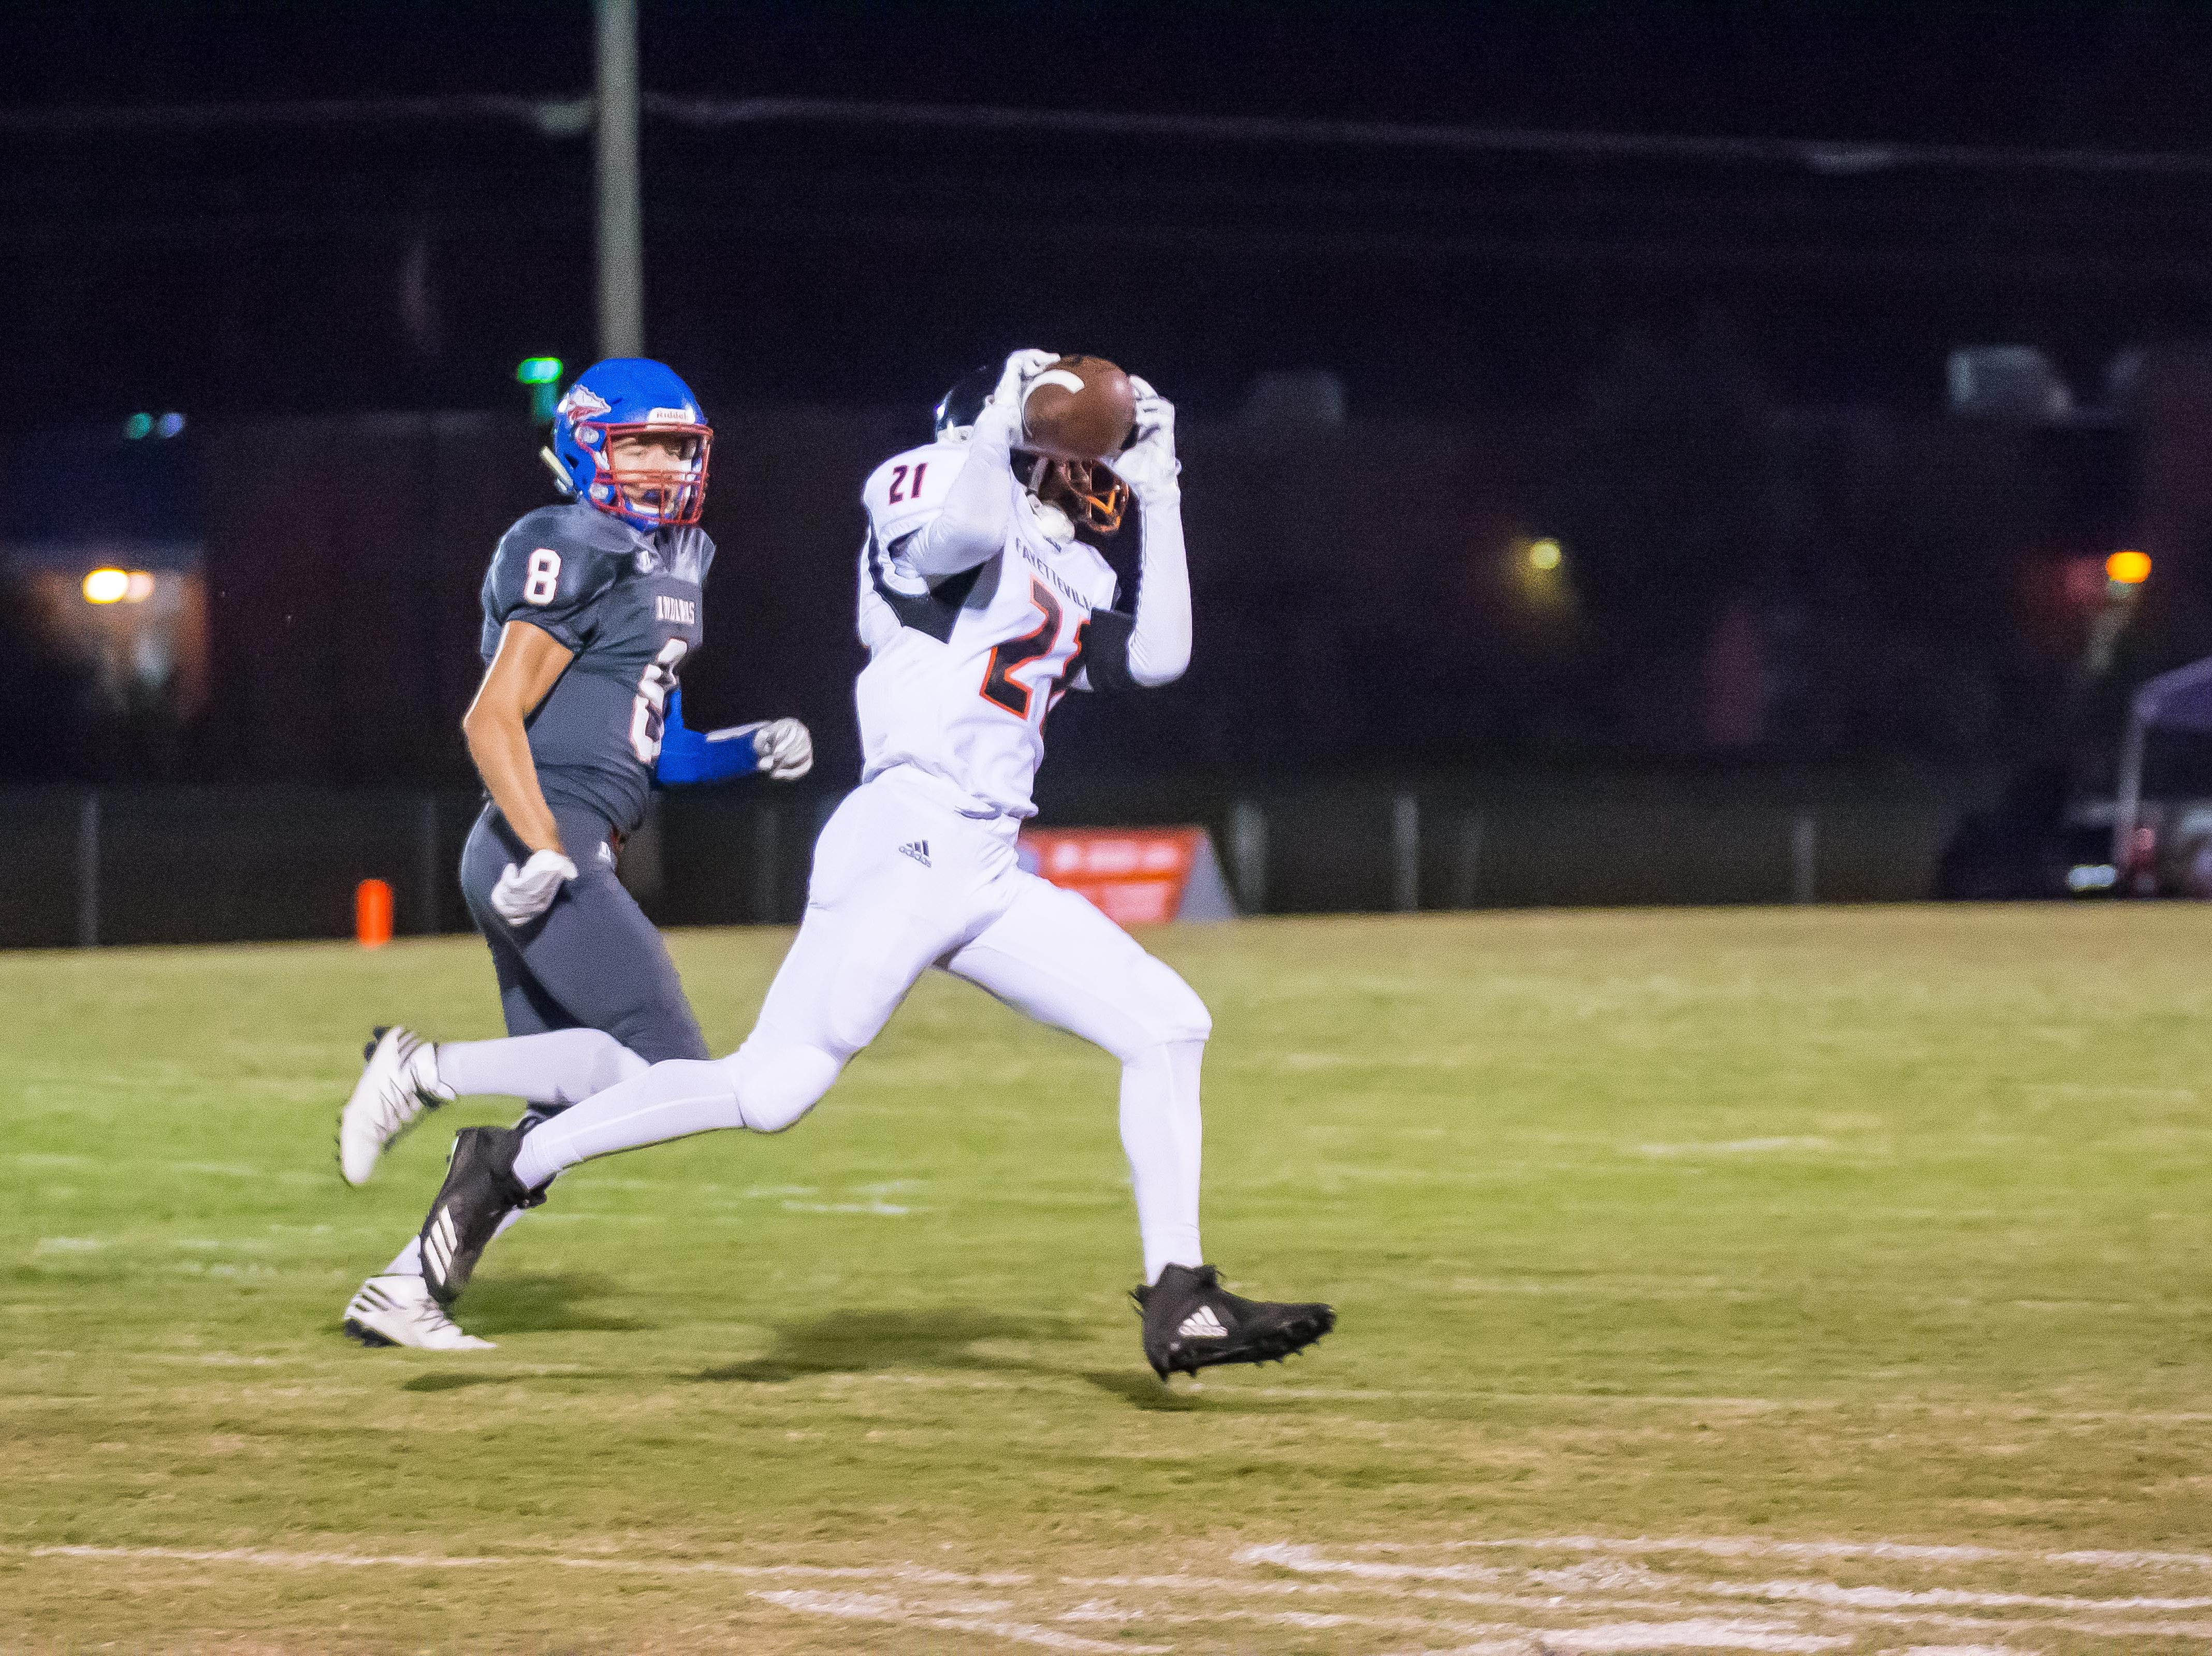 Fayetteville's Jalen Buchanan with a catch against Harpeth.